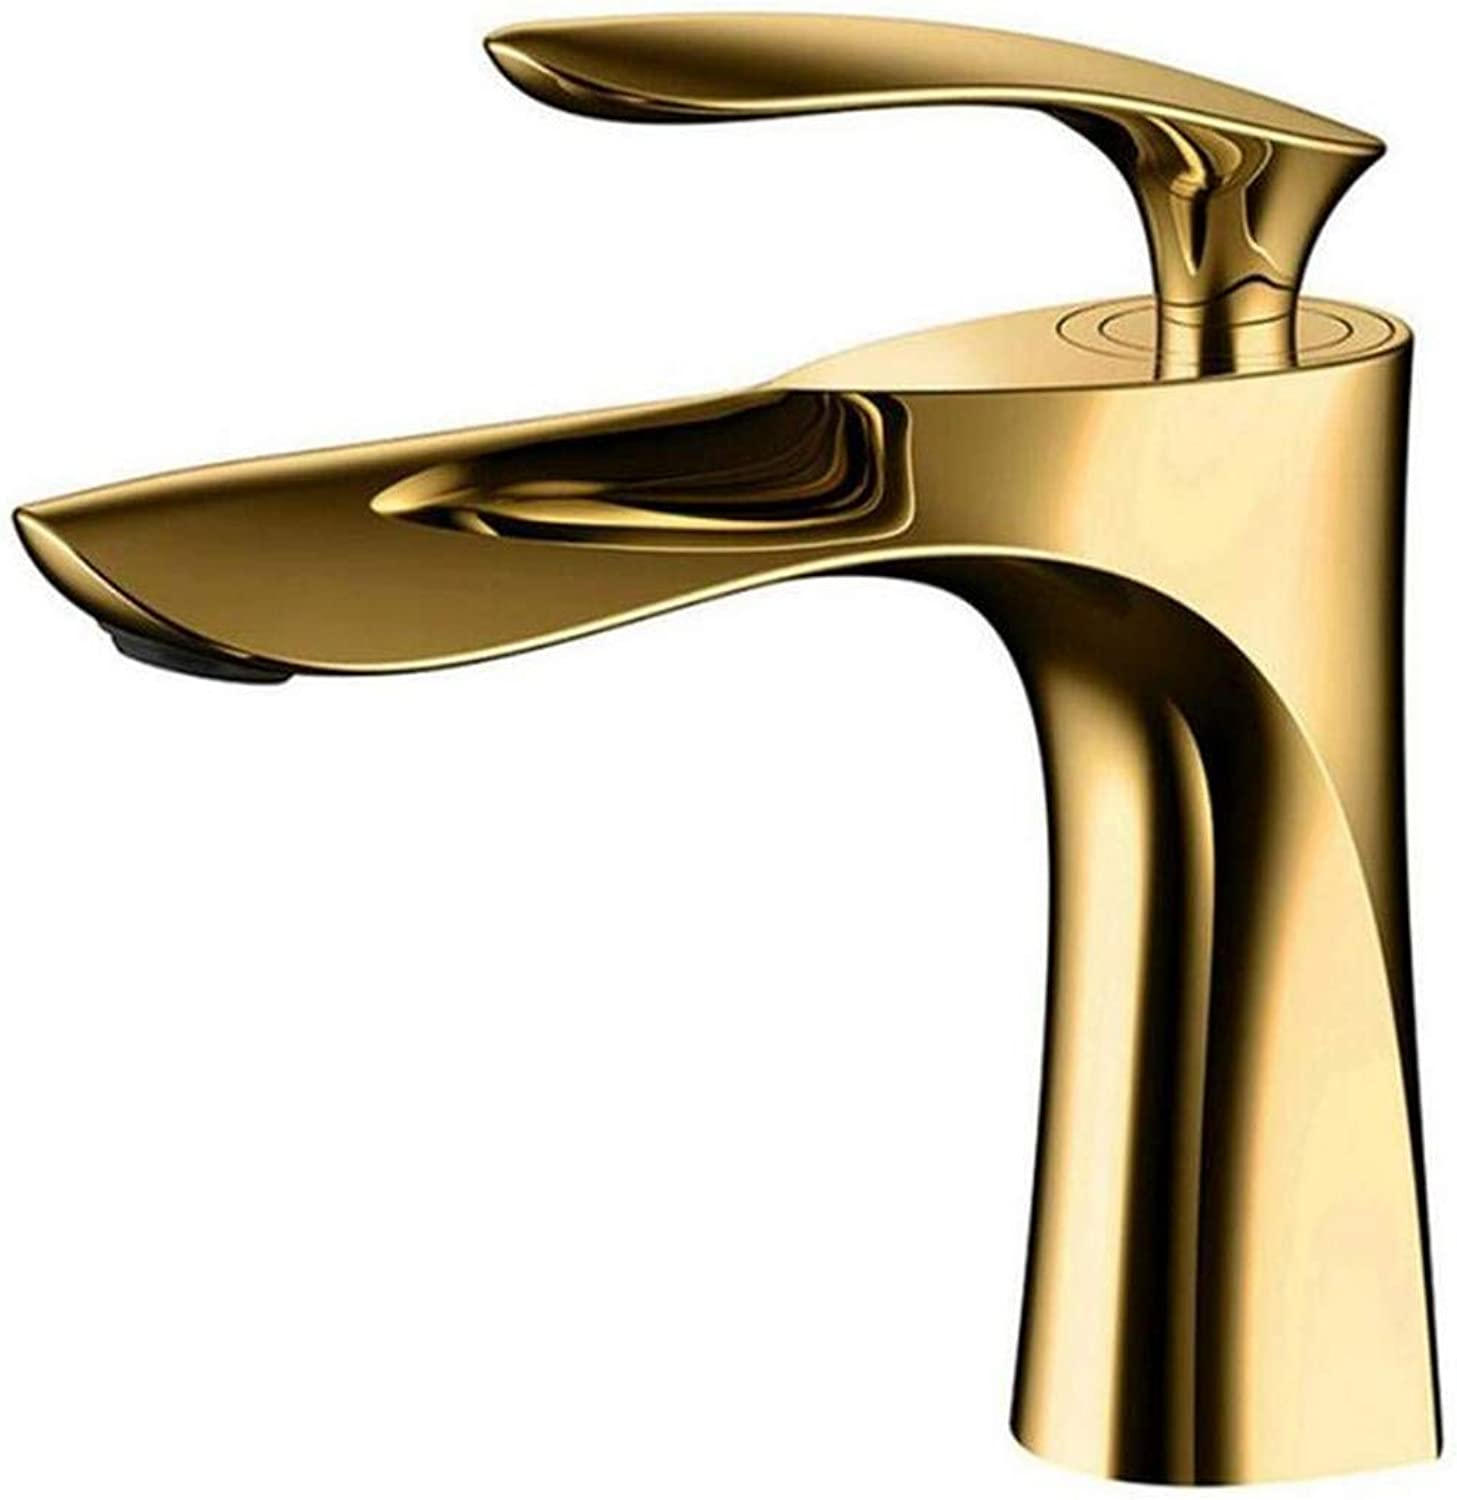 Retro Hot and Cold Water Brass Kitchen golden Finish Brass Faucet Hot & Cold Water Basin Mixer Elegant Retro Tap Toilet Sink Crane Torneira Grifo